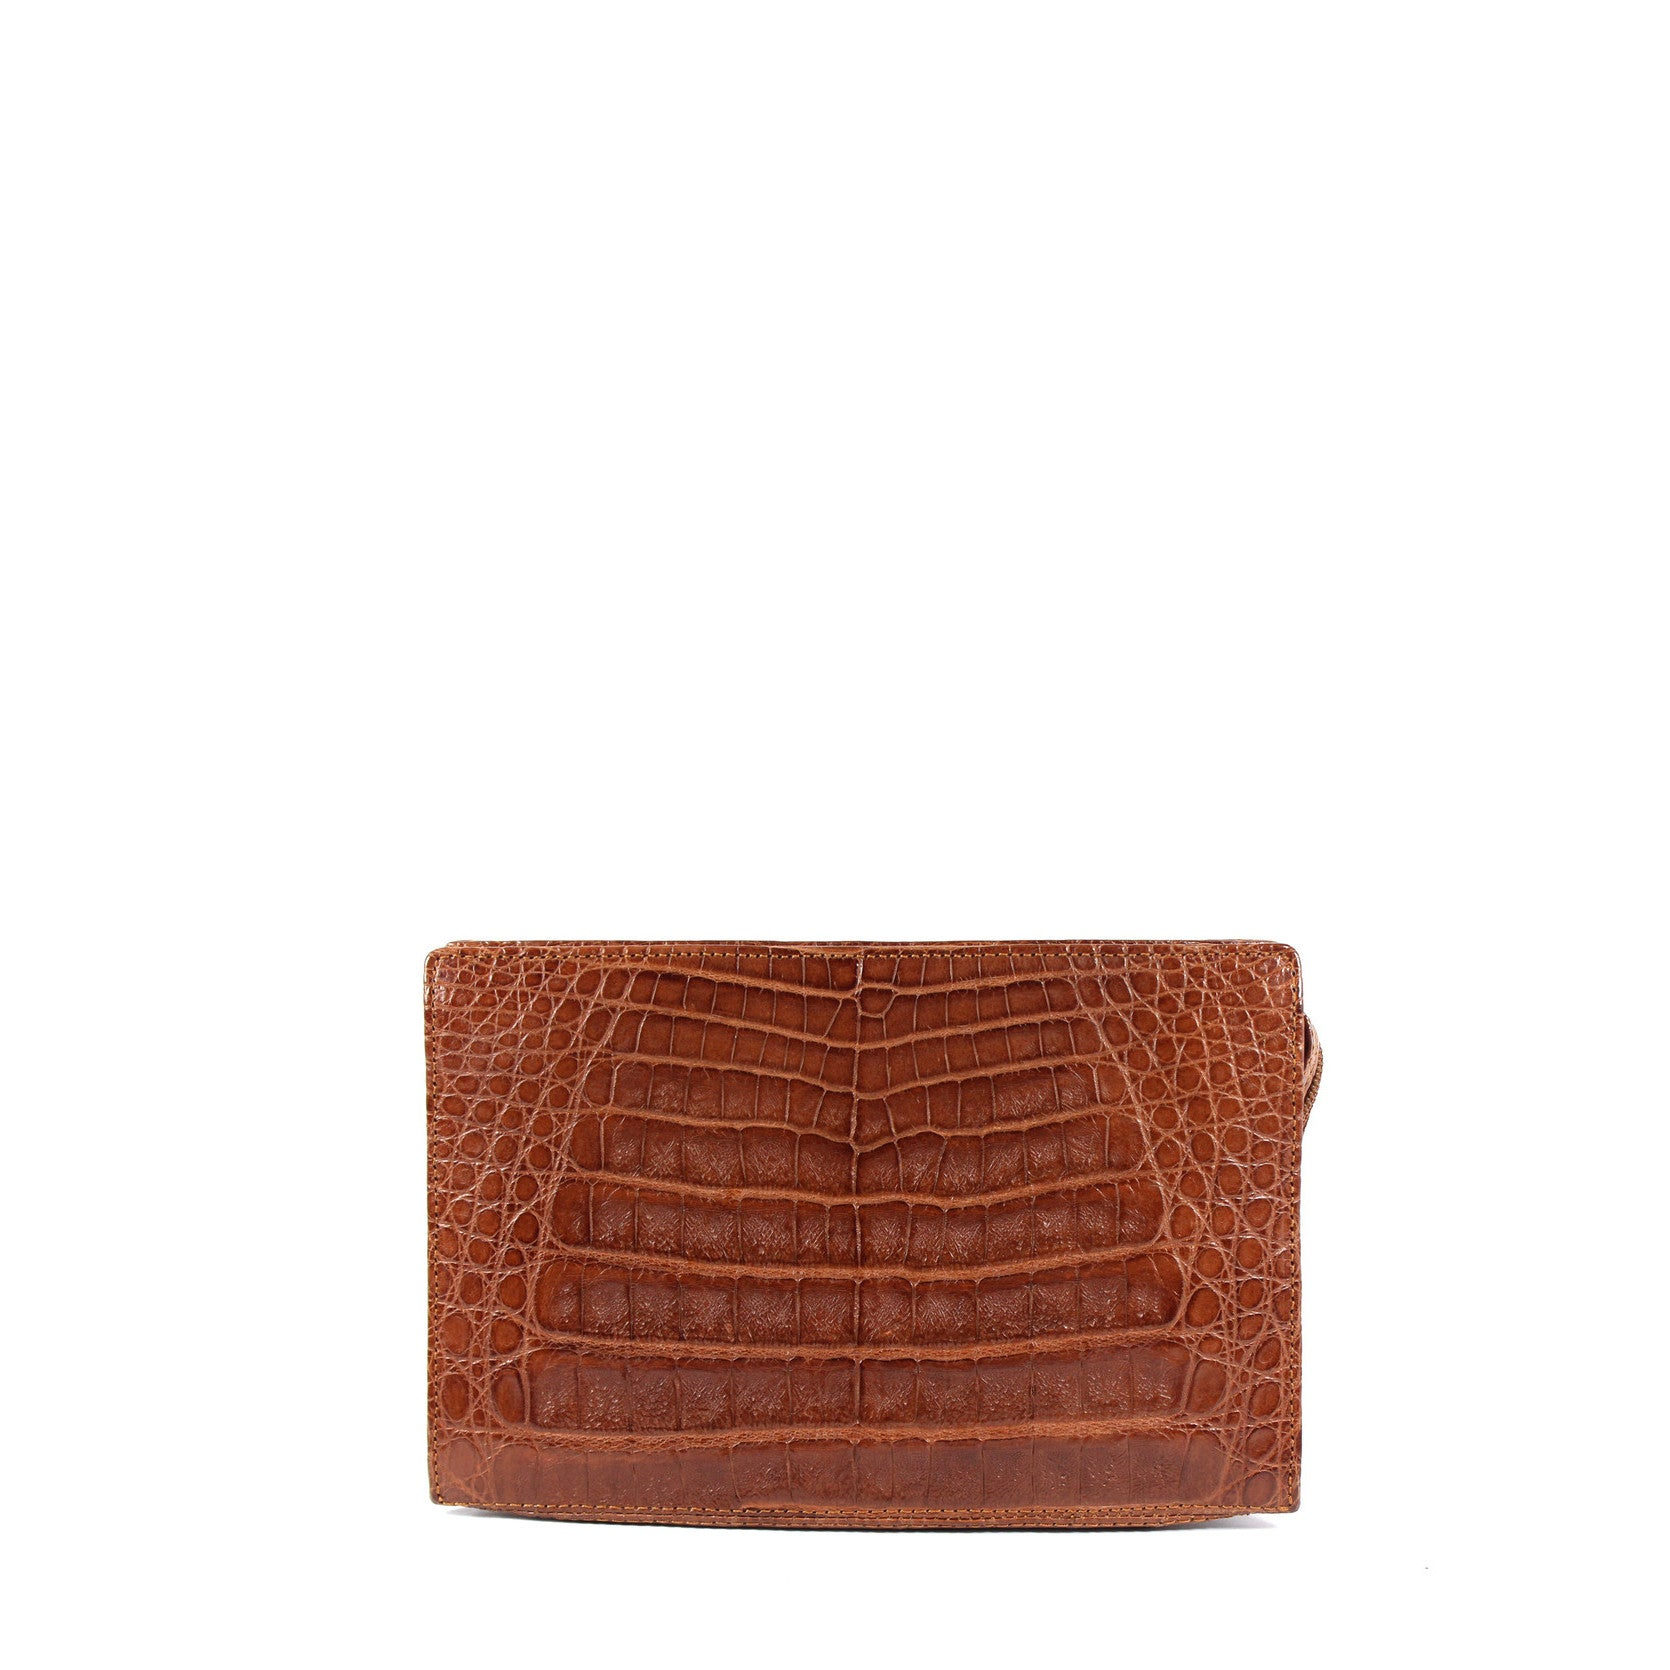 Lana Marks Brown Crocodile Box Clutch - Encore Consignment - 1